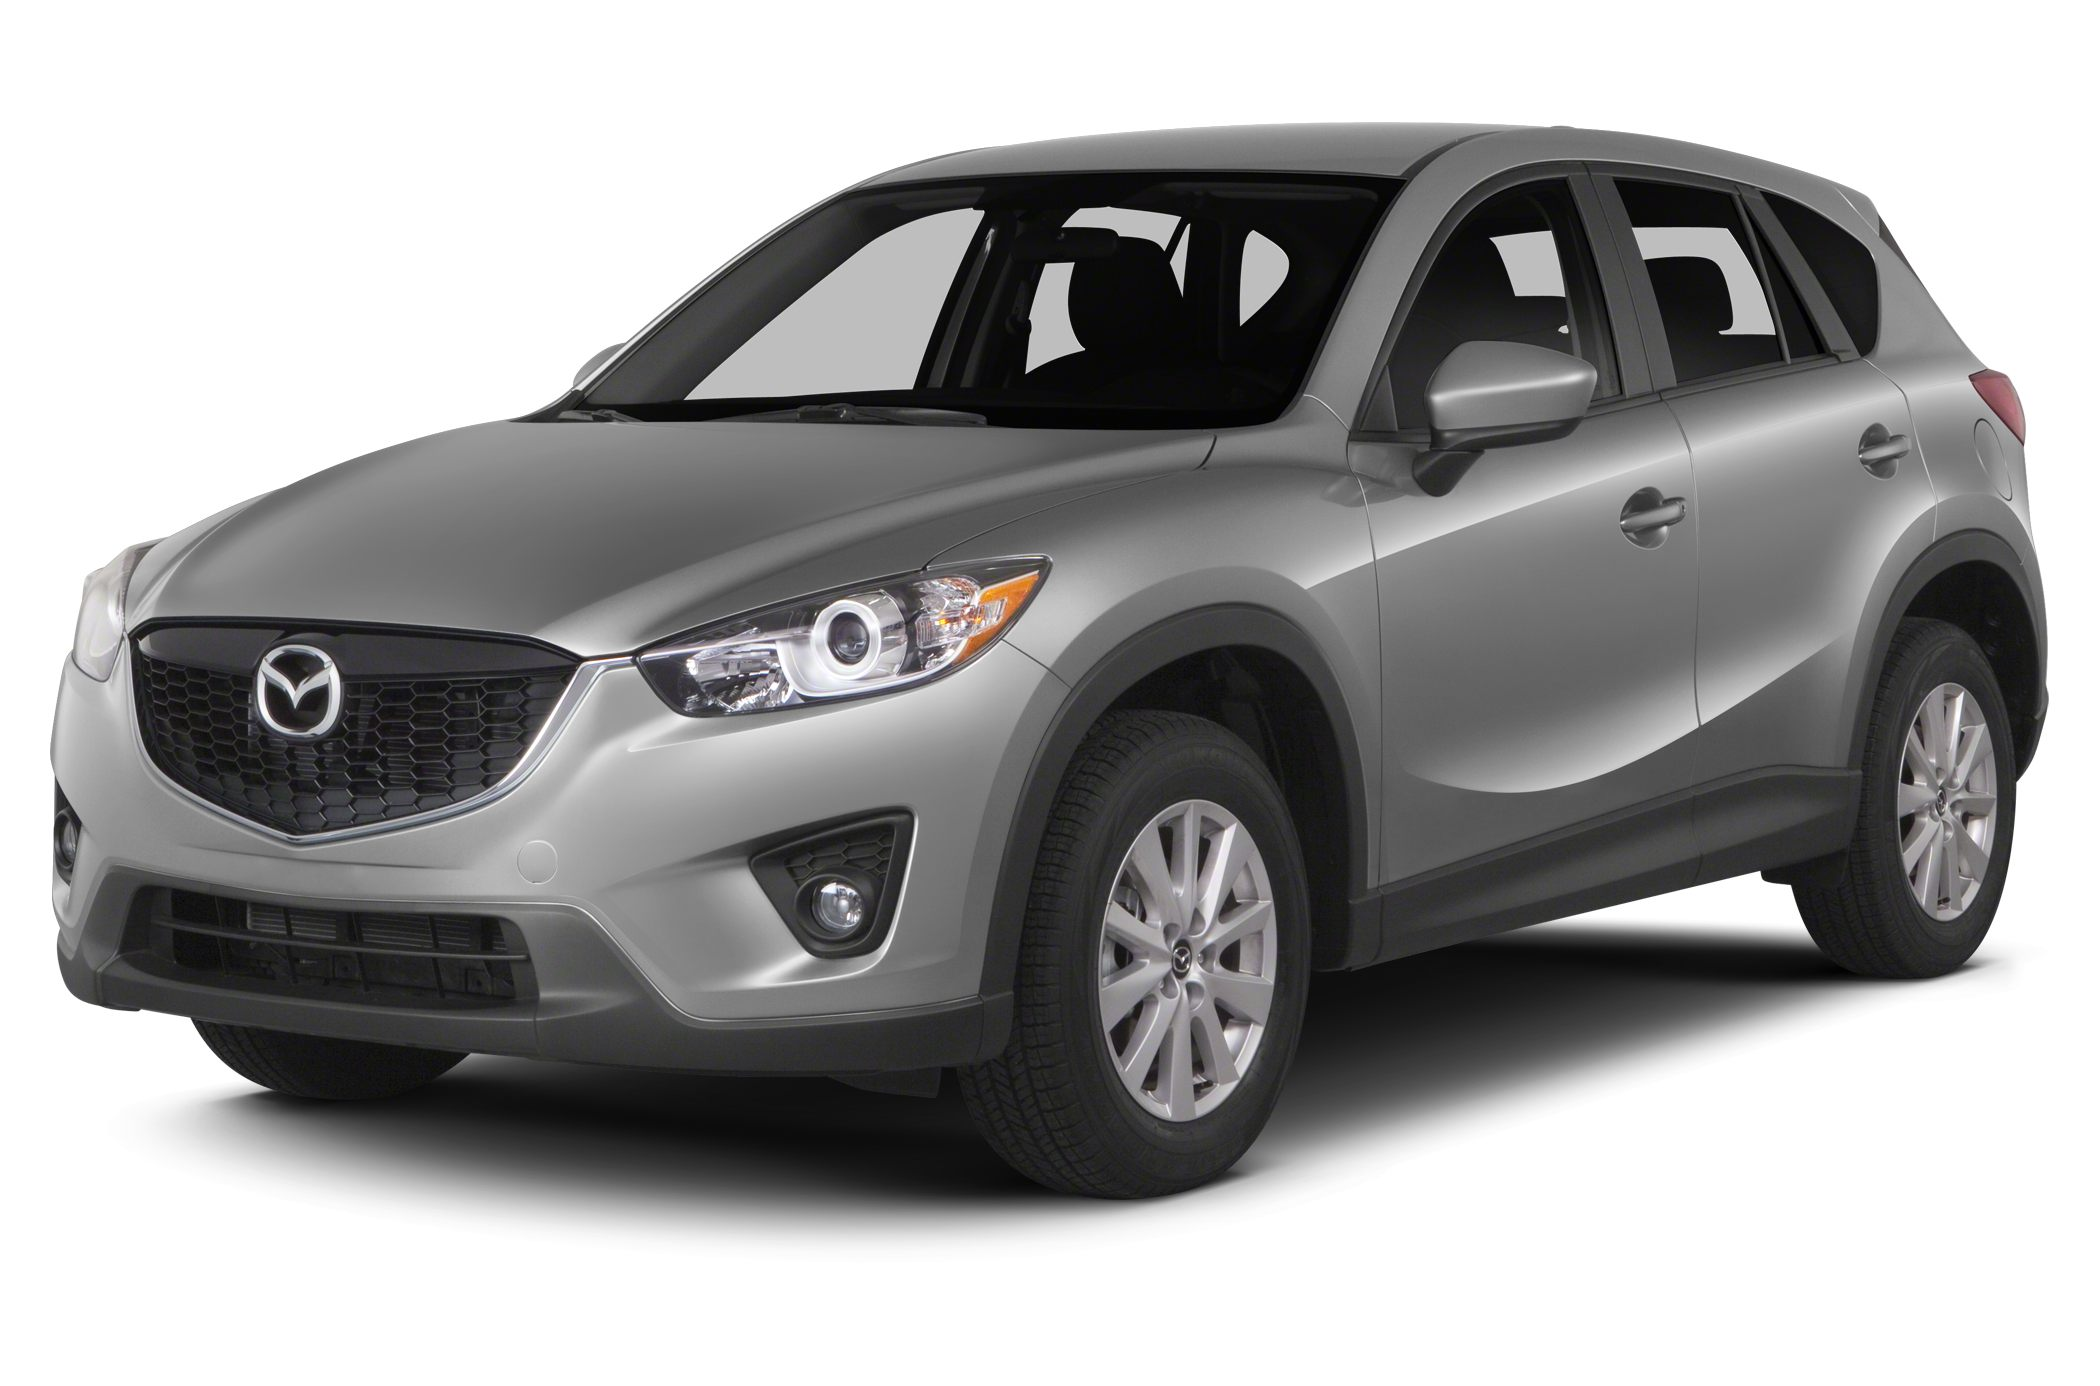 2014 Mazda CX-5 Touring SUV for sale in Conroe for $22,228 with 29,217 miles